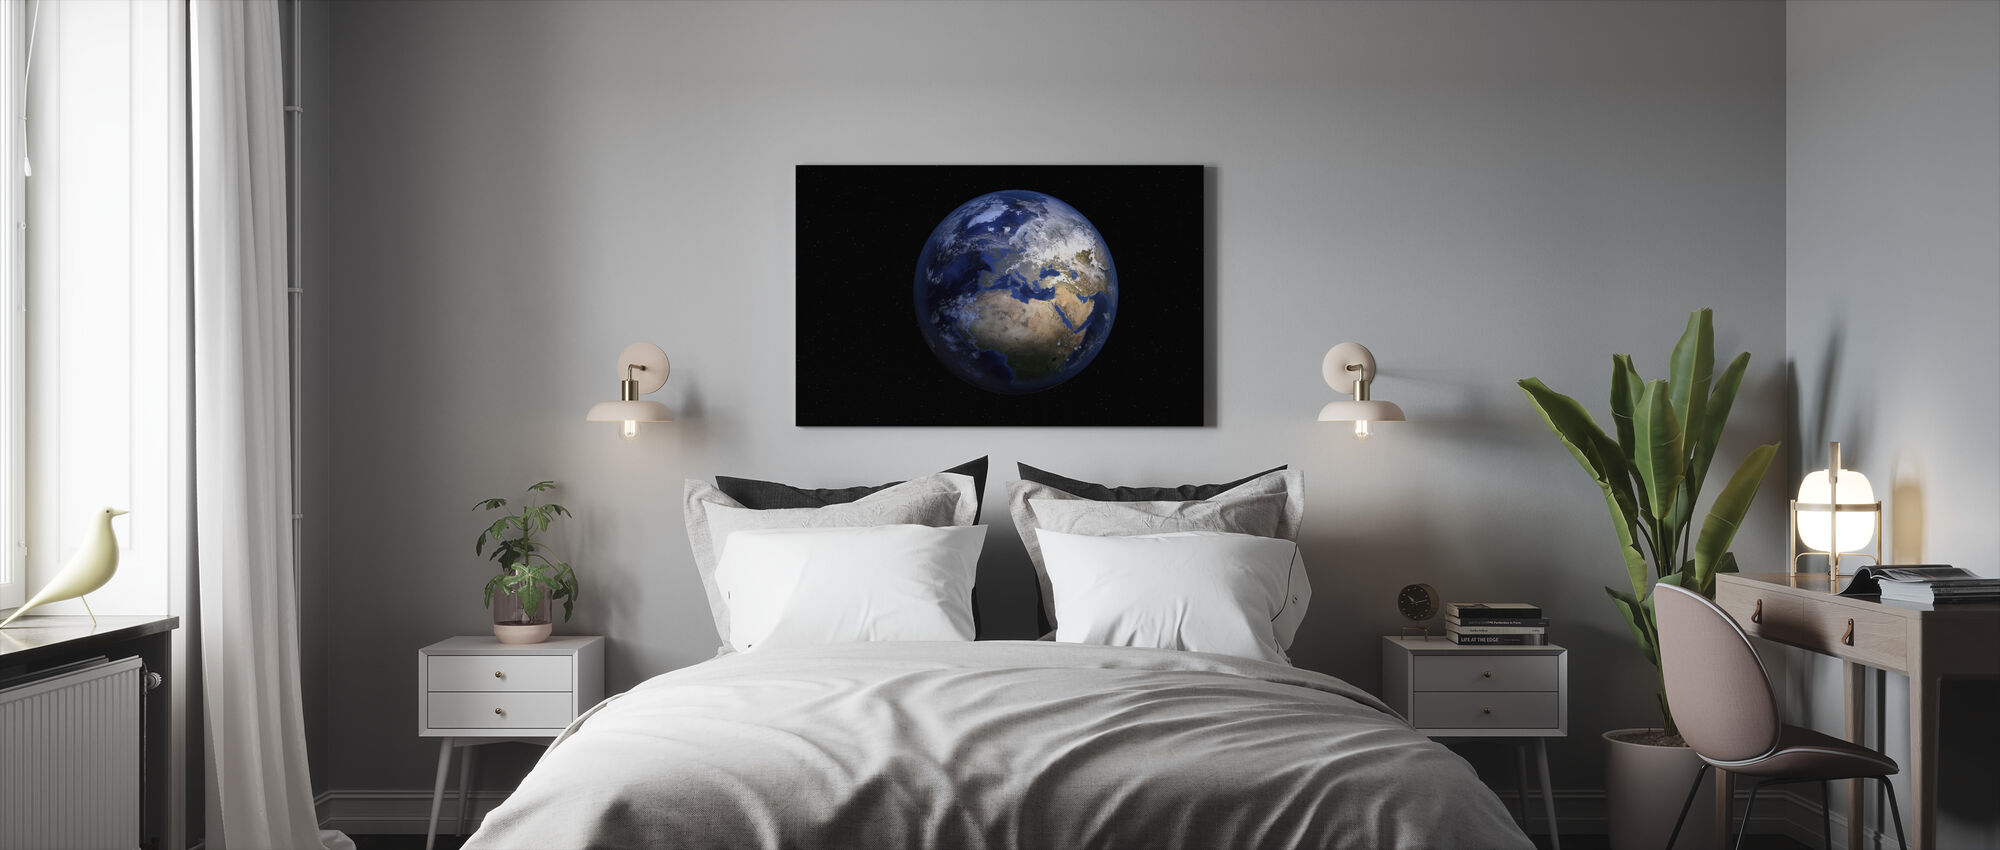 Planet Earth - Canvas print - Bedroom